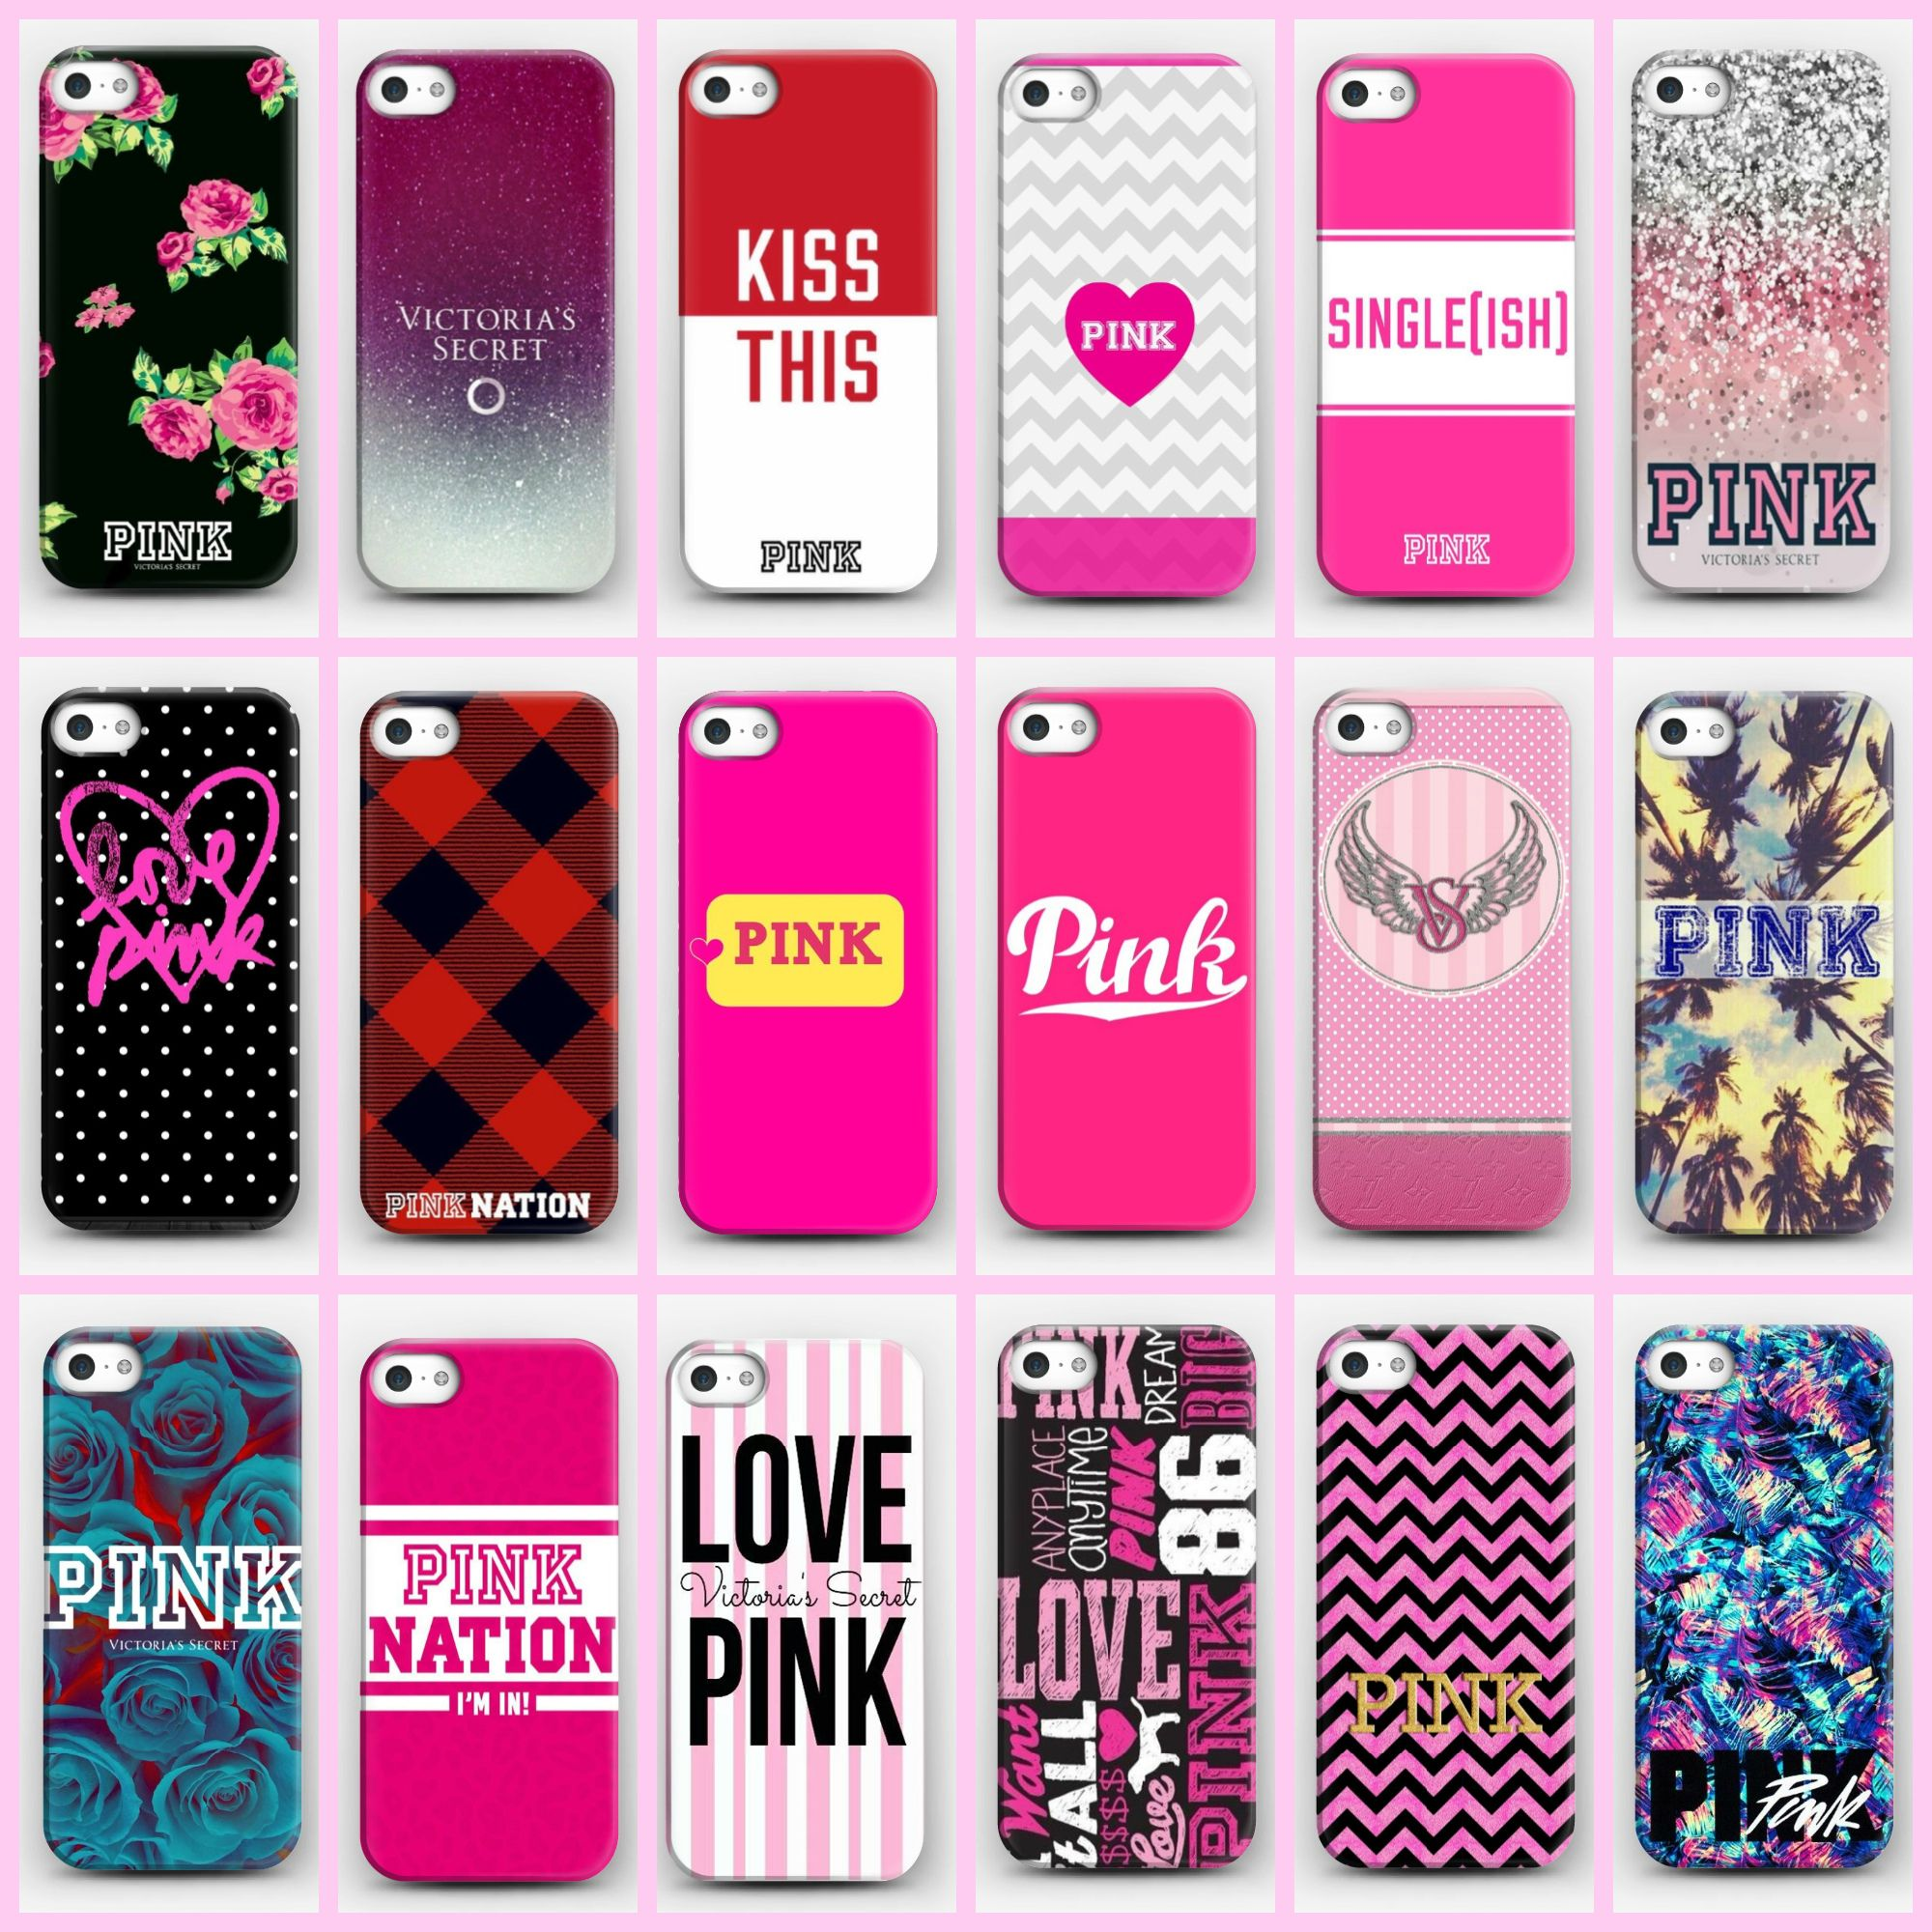 e2b828c72e26e Victoria's Secret PINK 1986 PC Hard Case Covers For iPhone 4S 5 5s ...